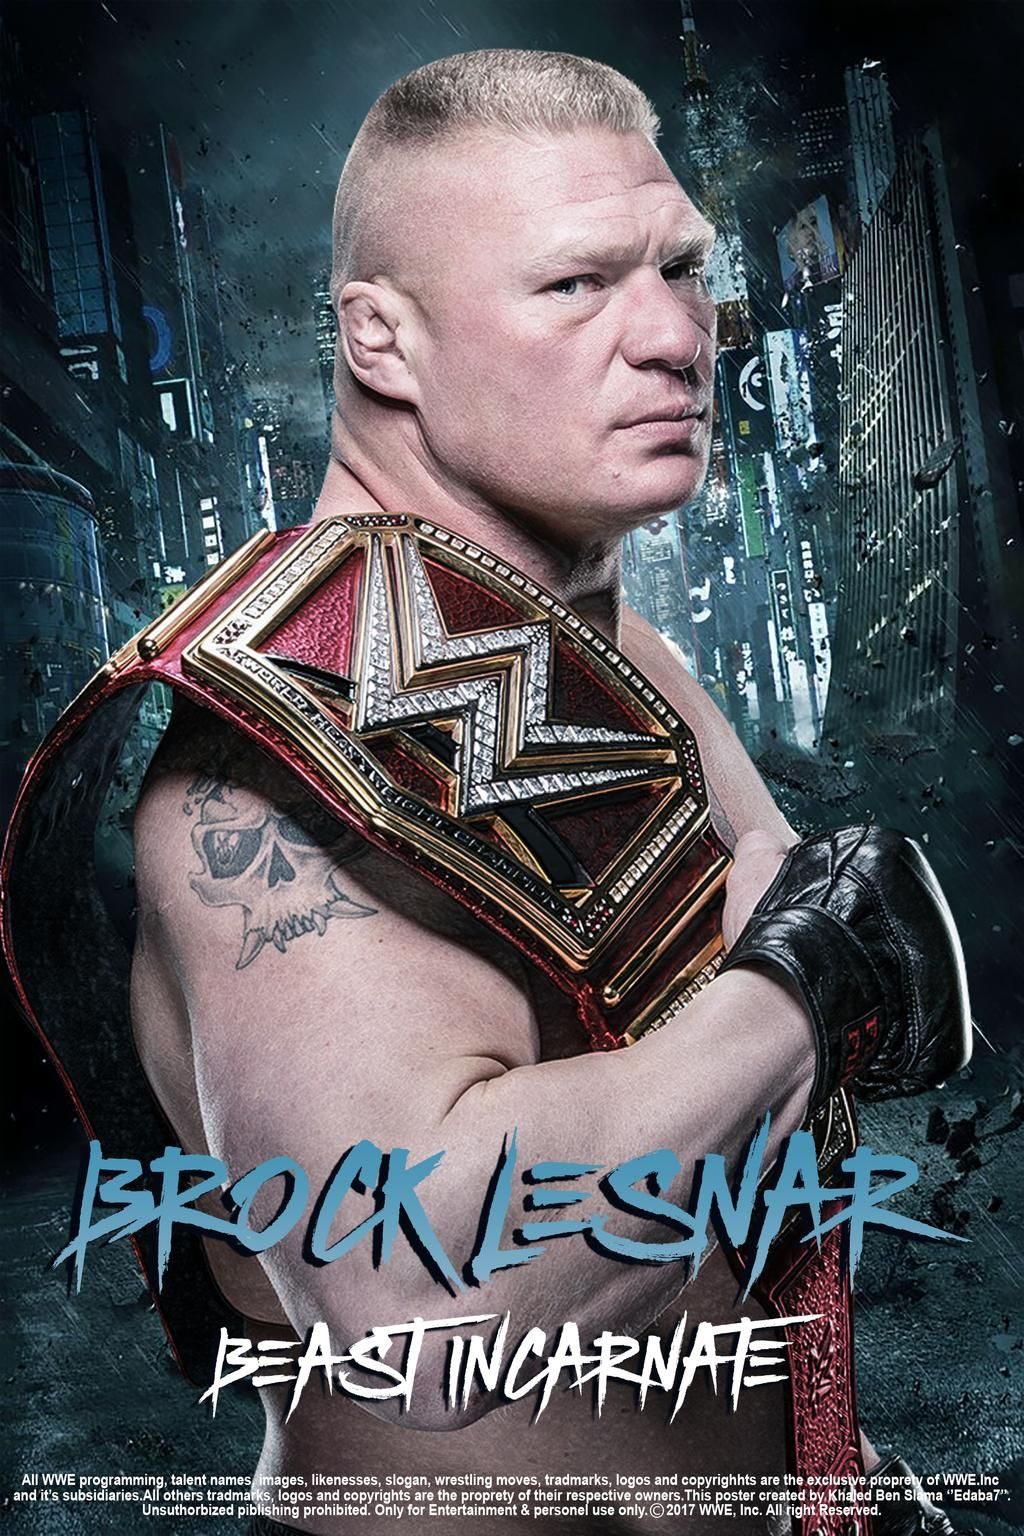 Wwe Brock Lesnar Poster 2017 By Edaba7 On Deviantart In 2020 Wwe Brock Brock Lesnar Brock Lesnar Photos